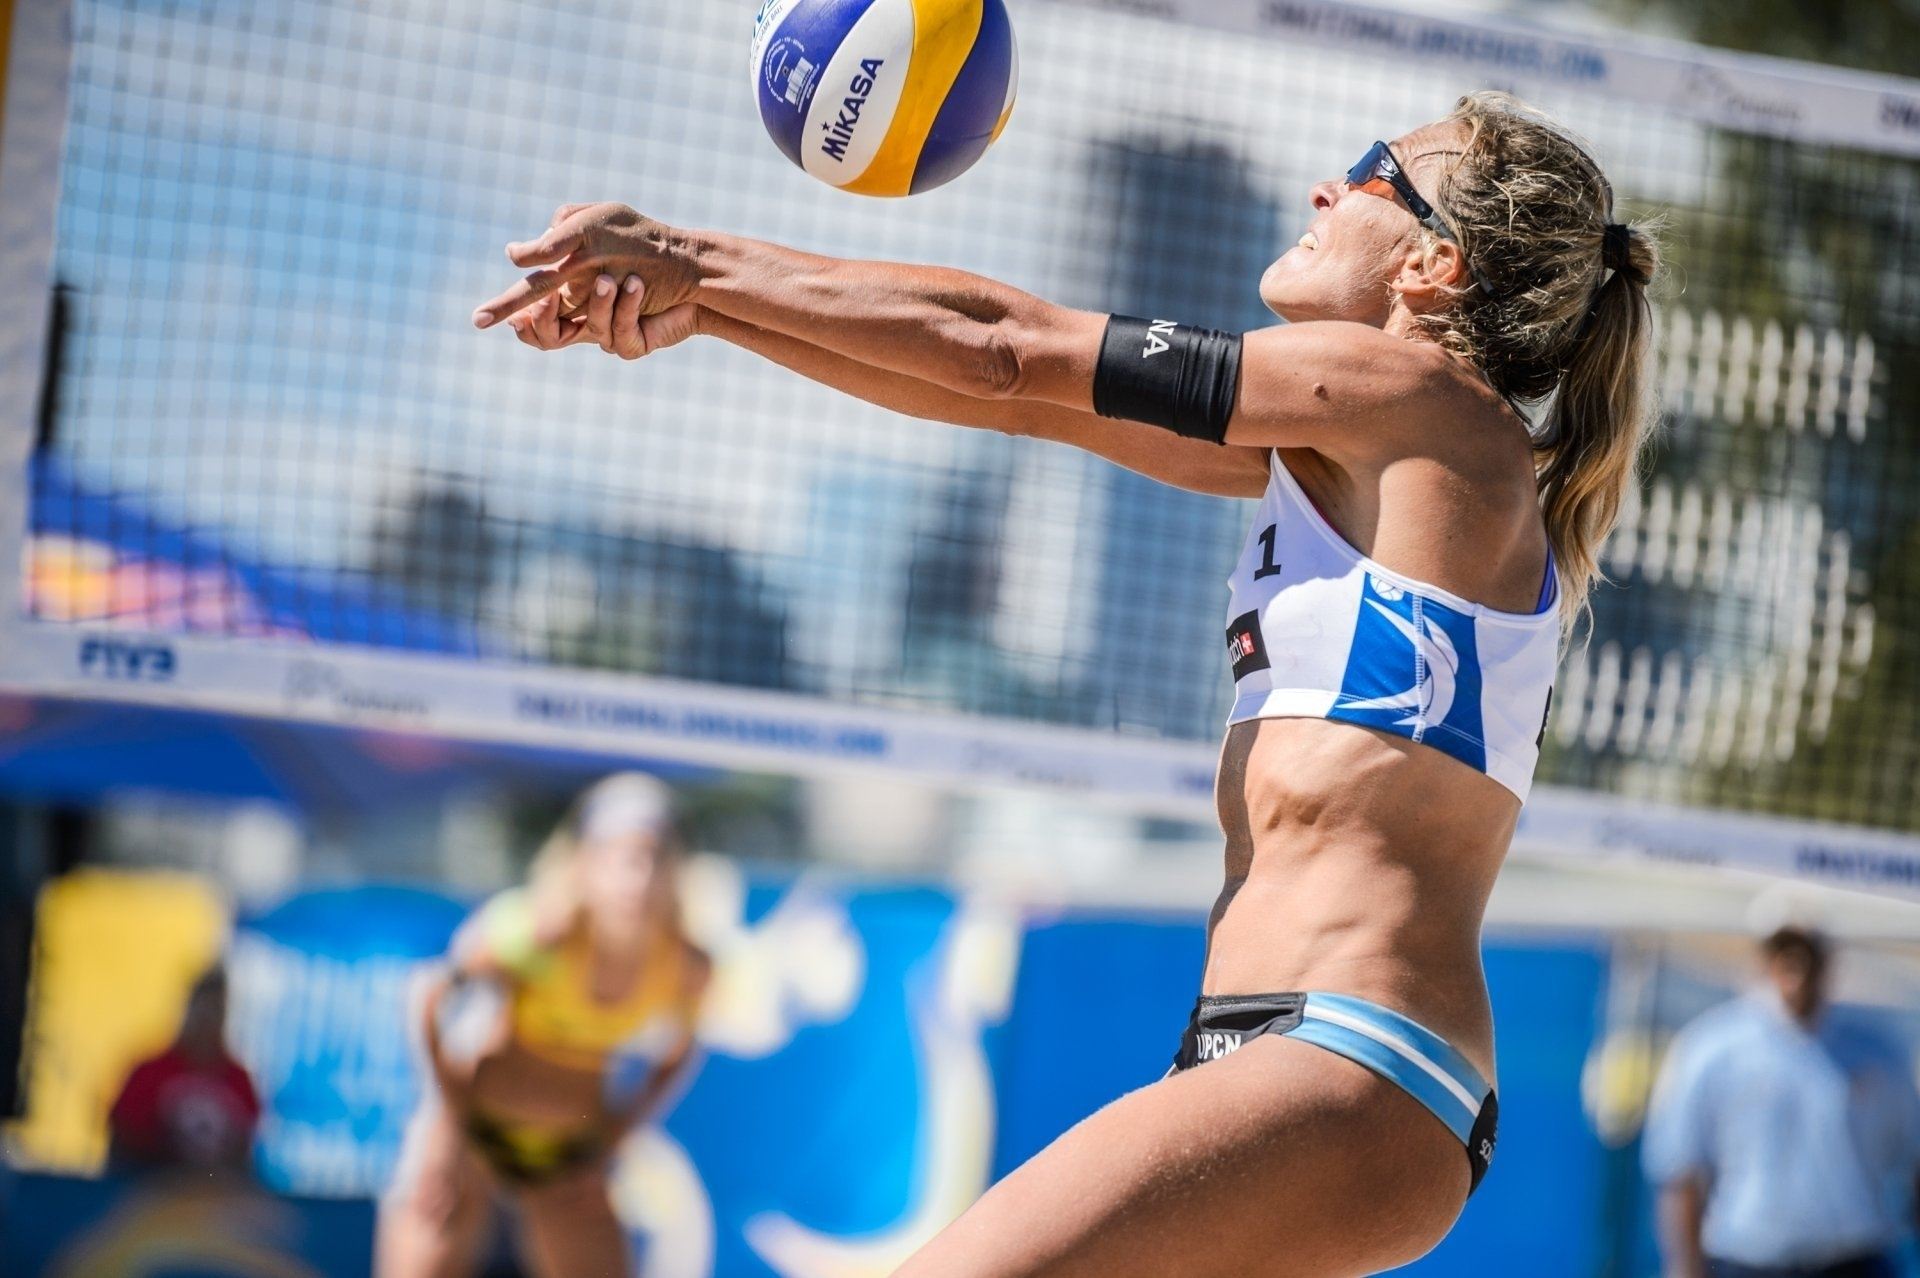 Two-time Olympian Ana Gallay of Argentina is one of the stars of the South American Tour in Rosario